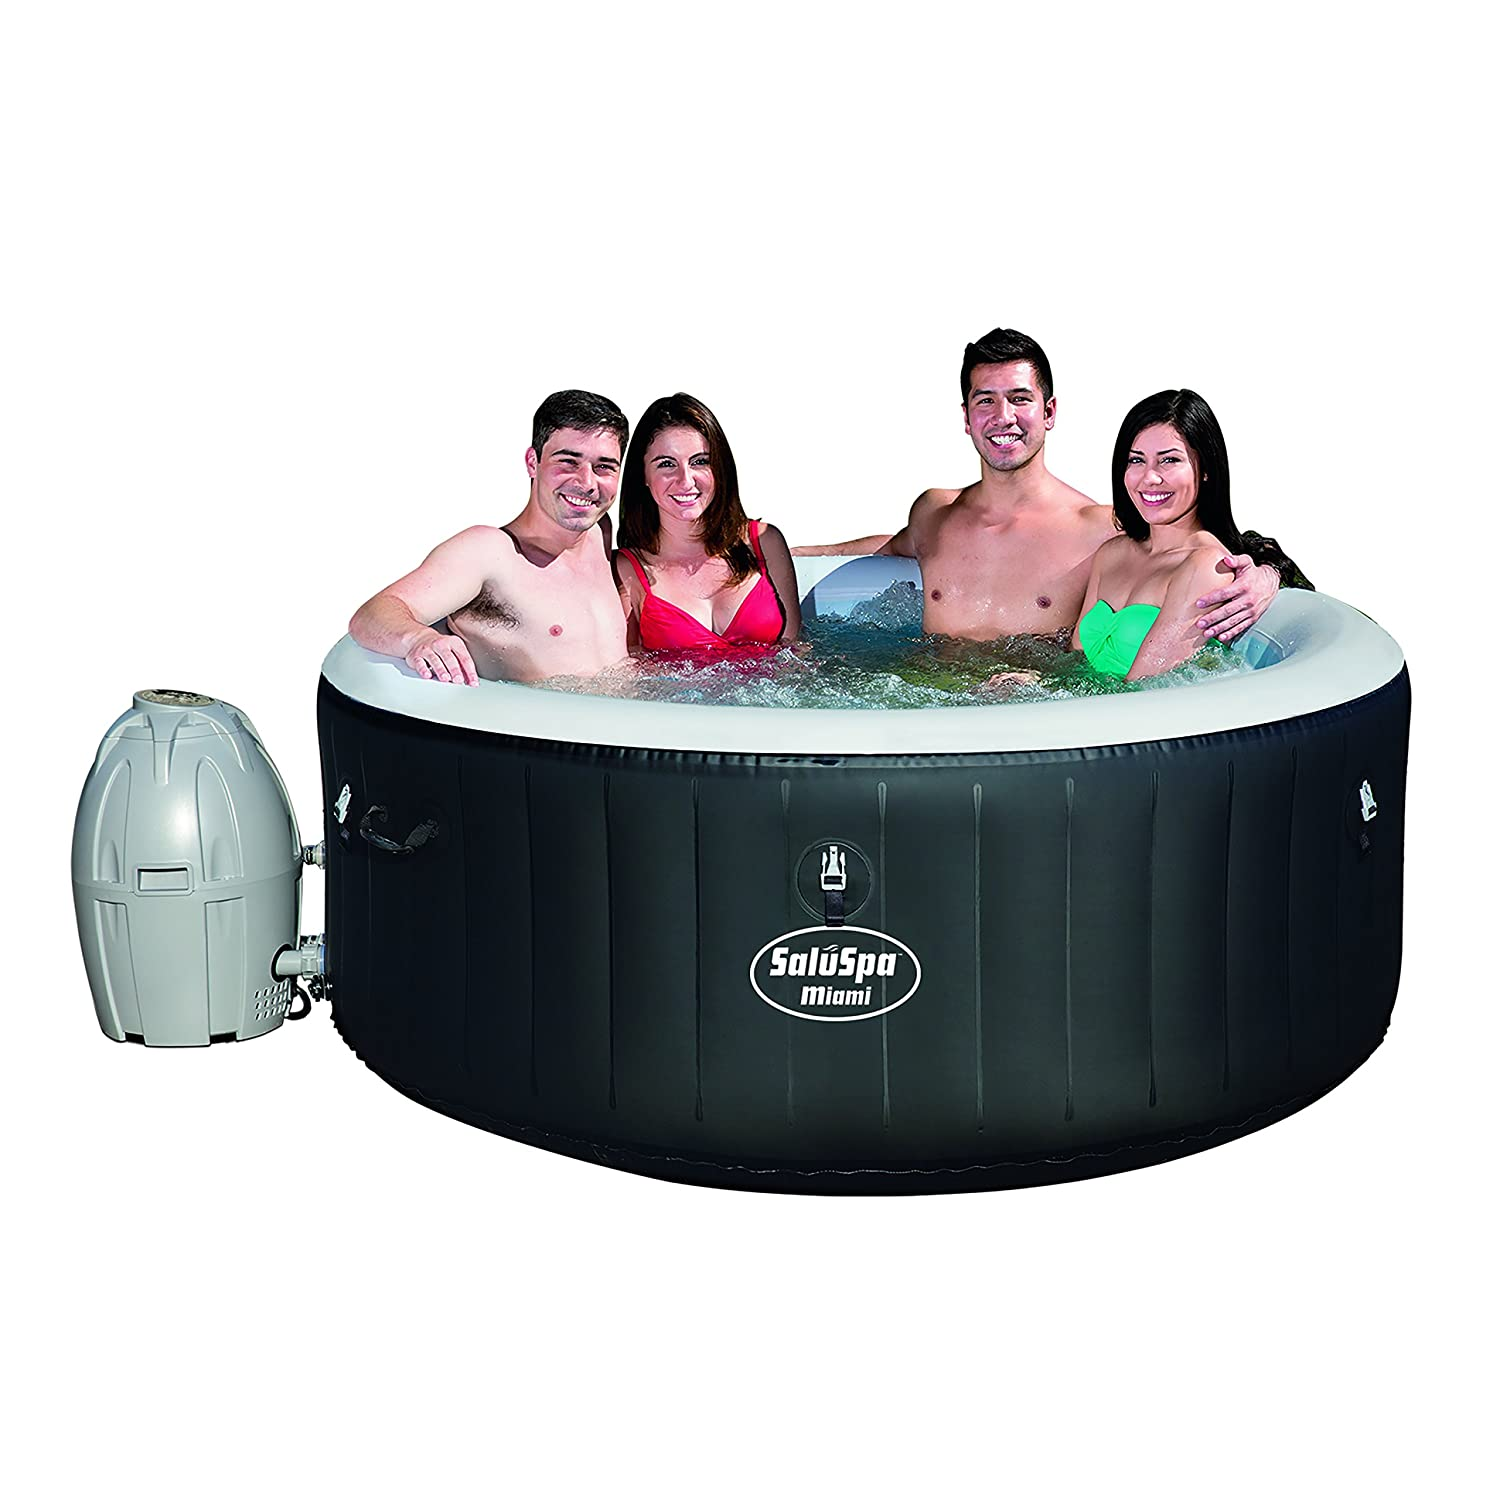 The Best Outdoor Hot Tubs For Your Garden: Reviews & Buying Guide 1